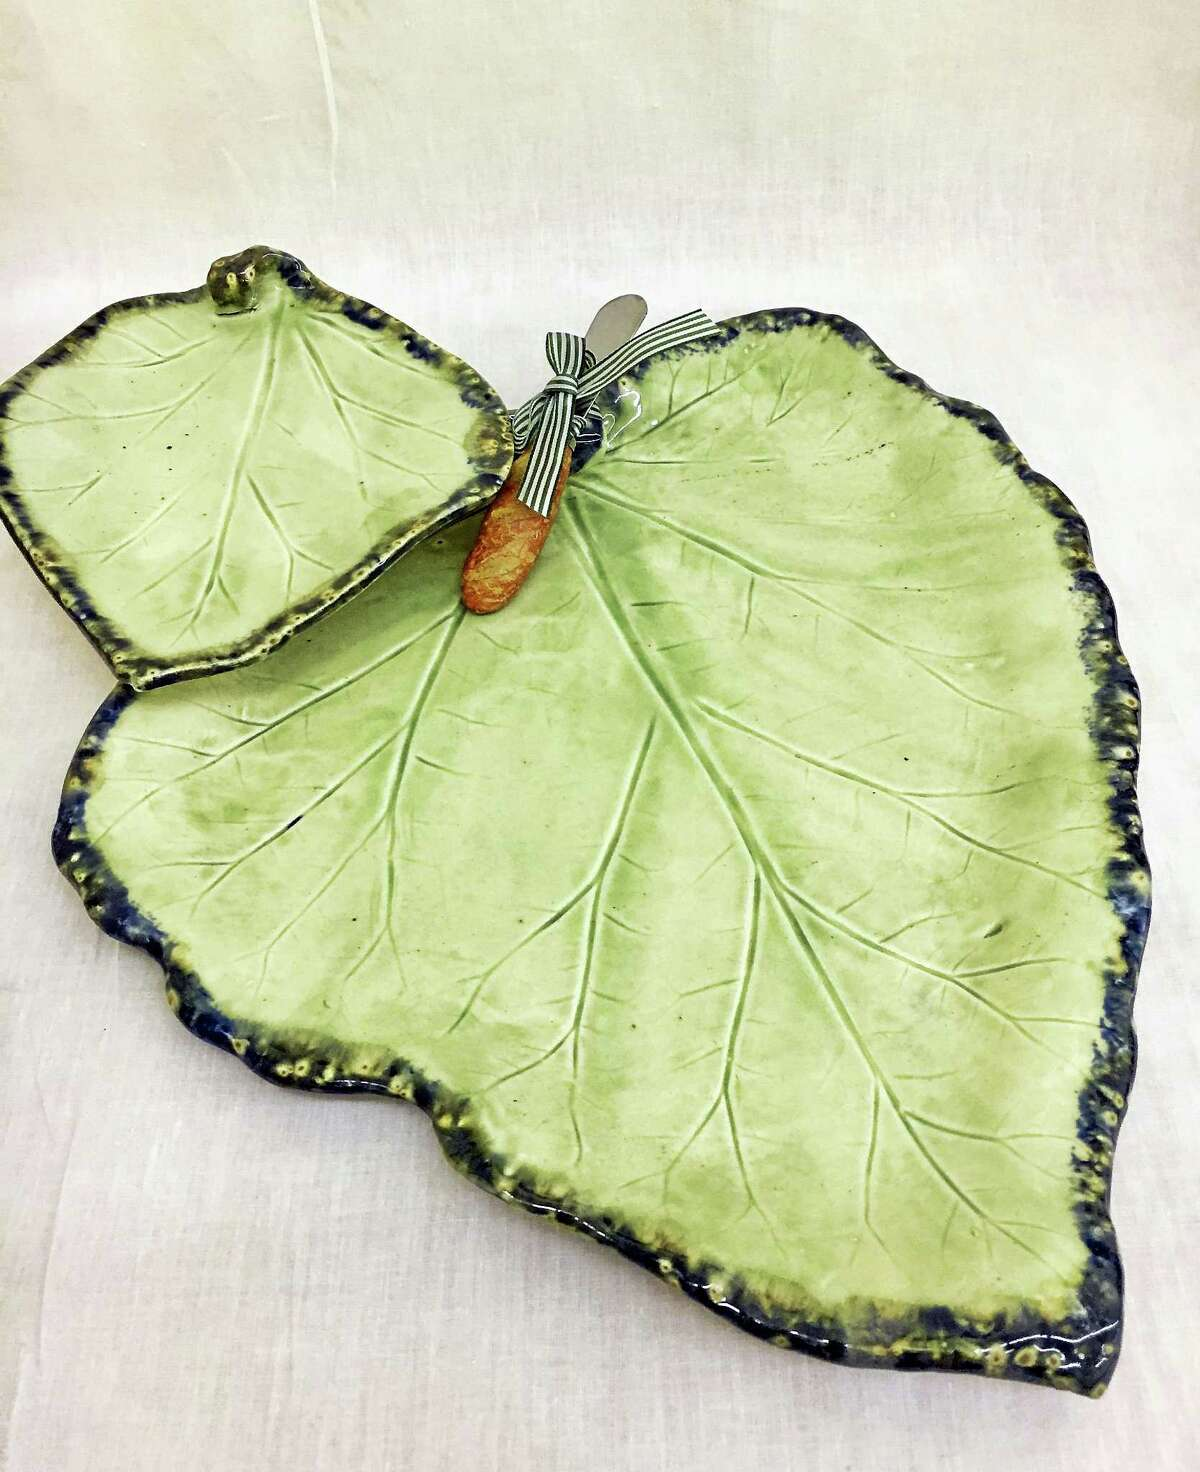 Works of art by Nutmeg Potters in Winsted will be available at Manchester's Art in the Park on June 4.